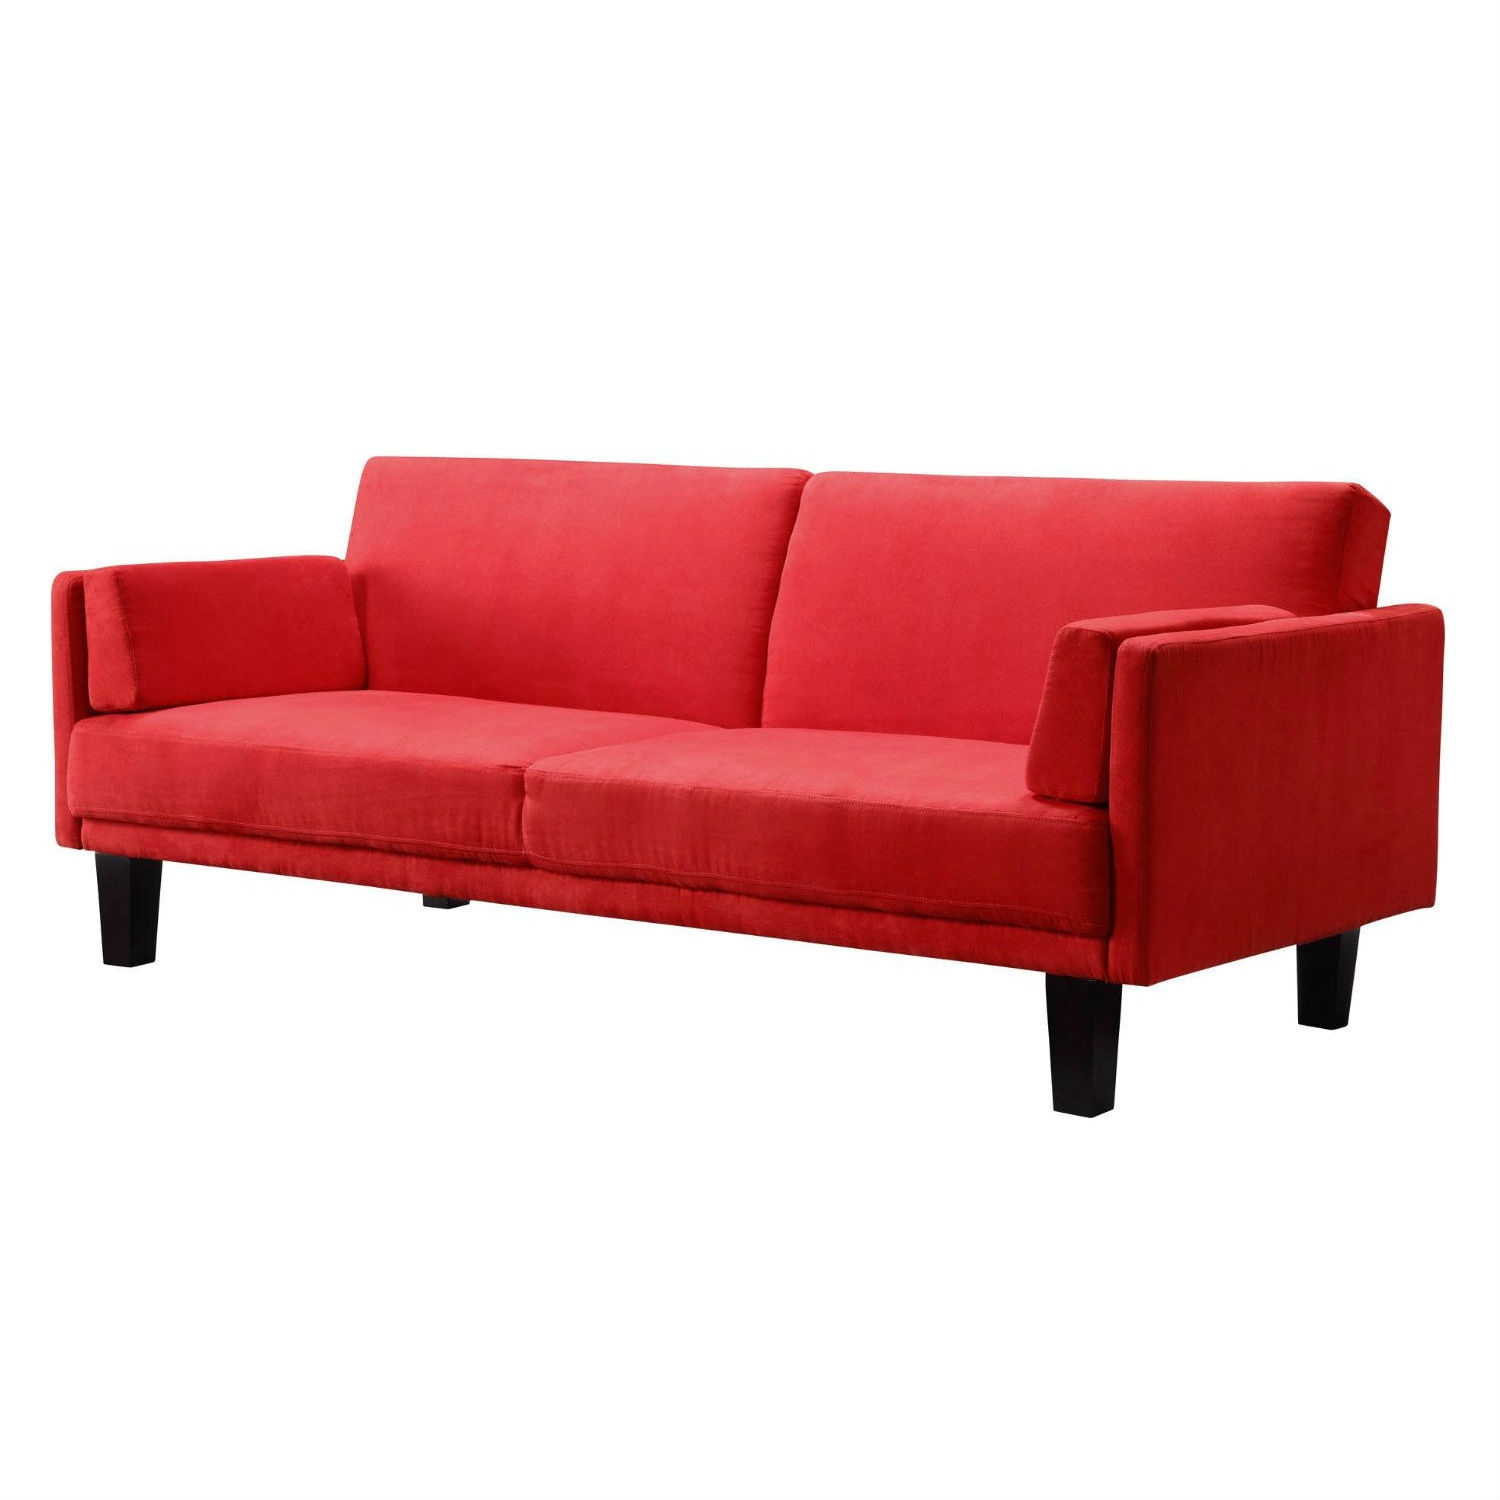 Contemporary Mid-Century Style Sofa Bed in Red Microfiber Upholstery ...